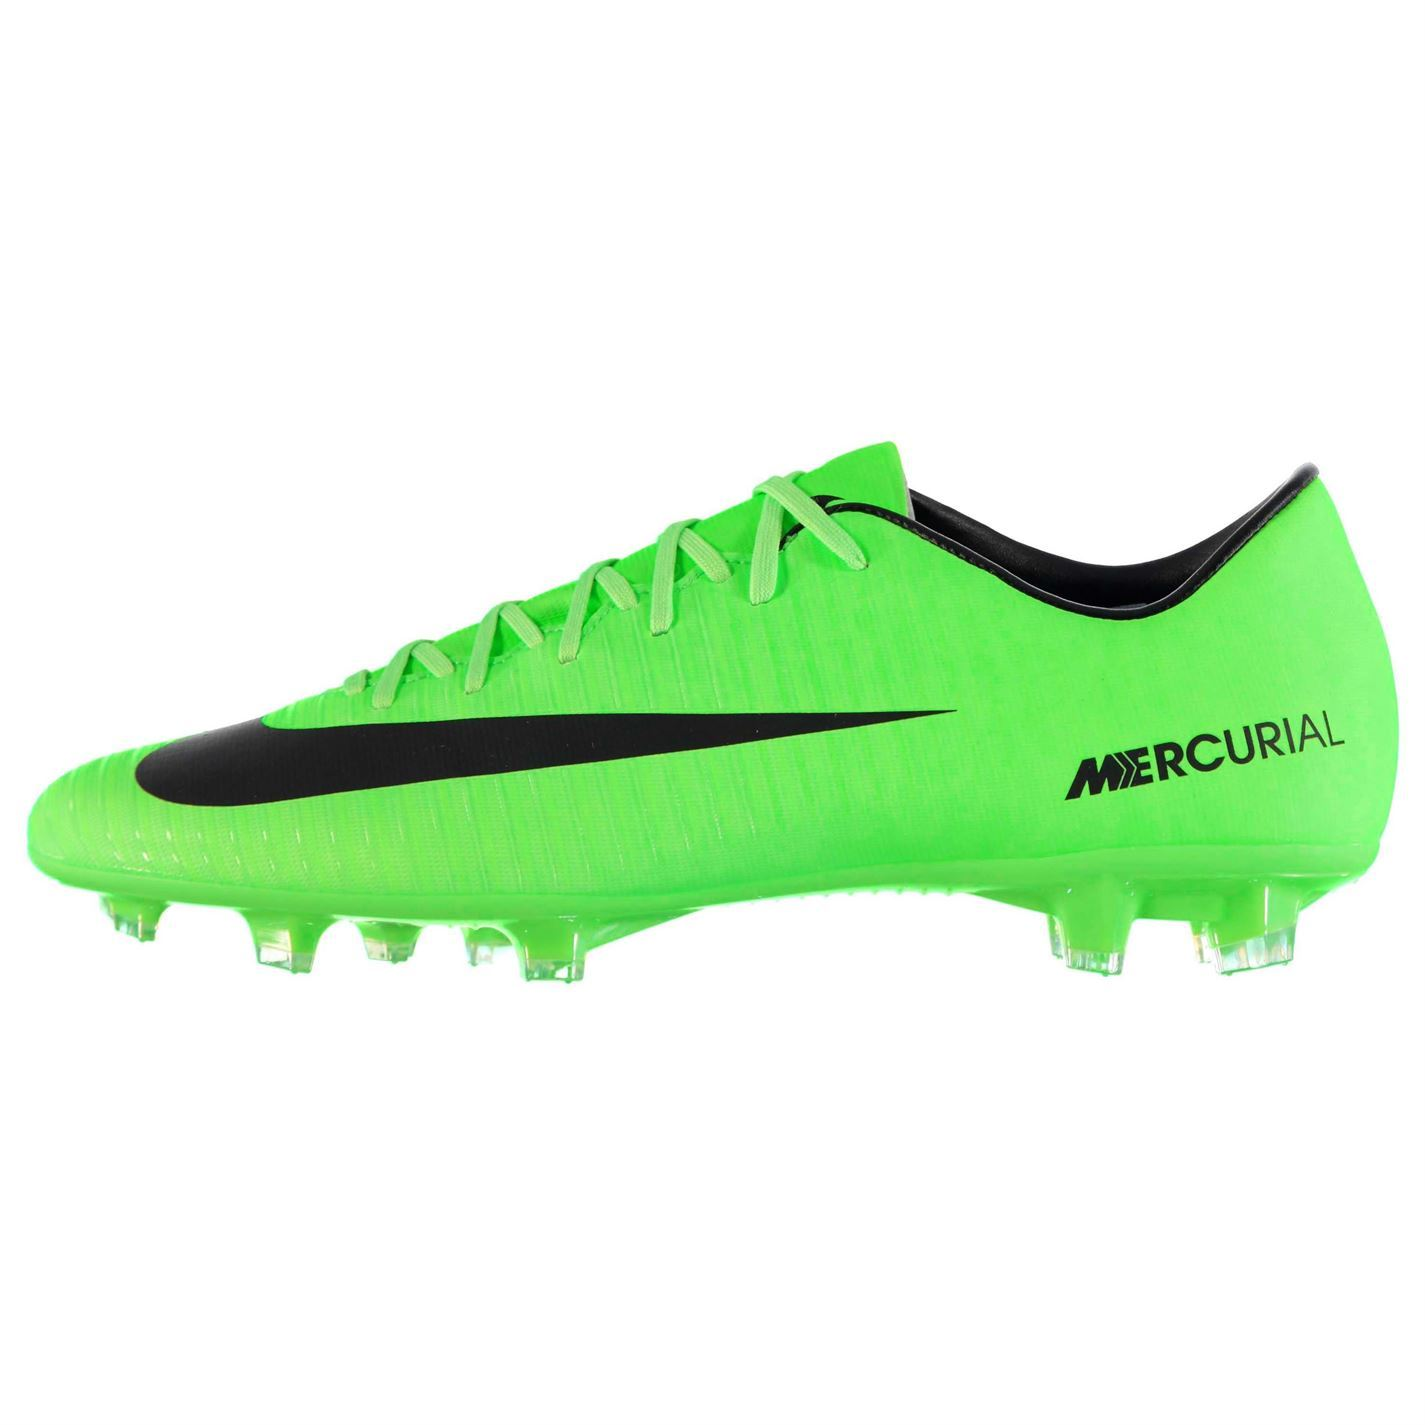 59a3922270e056 ... Nike Mercurial Victory FG Firm Ground Football Boots Mens Grn Blk  Soccer Shoes ...